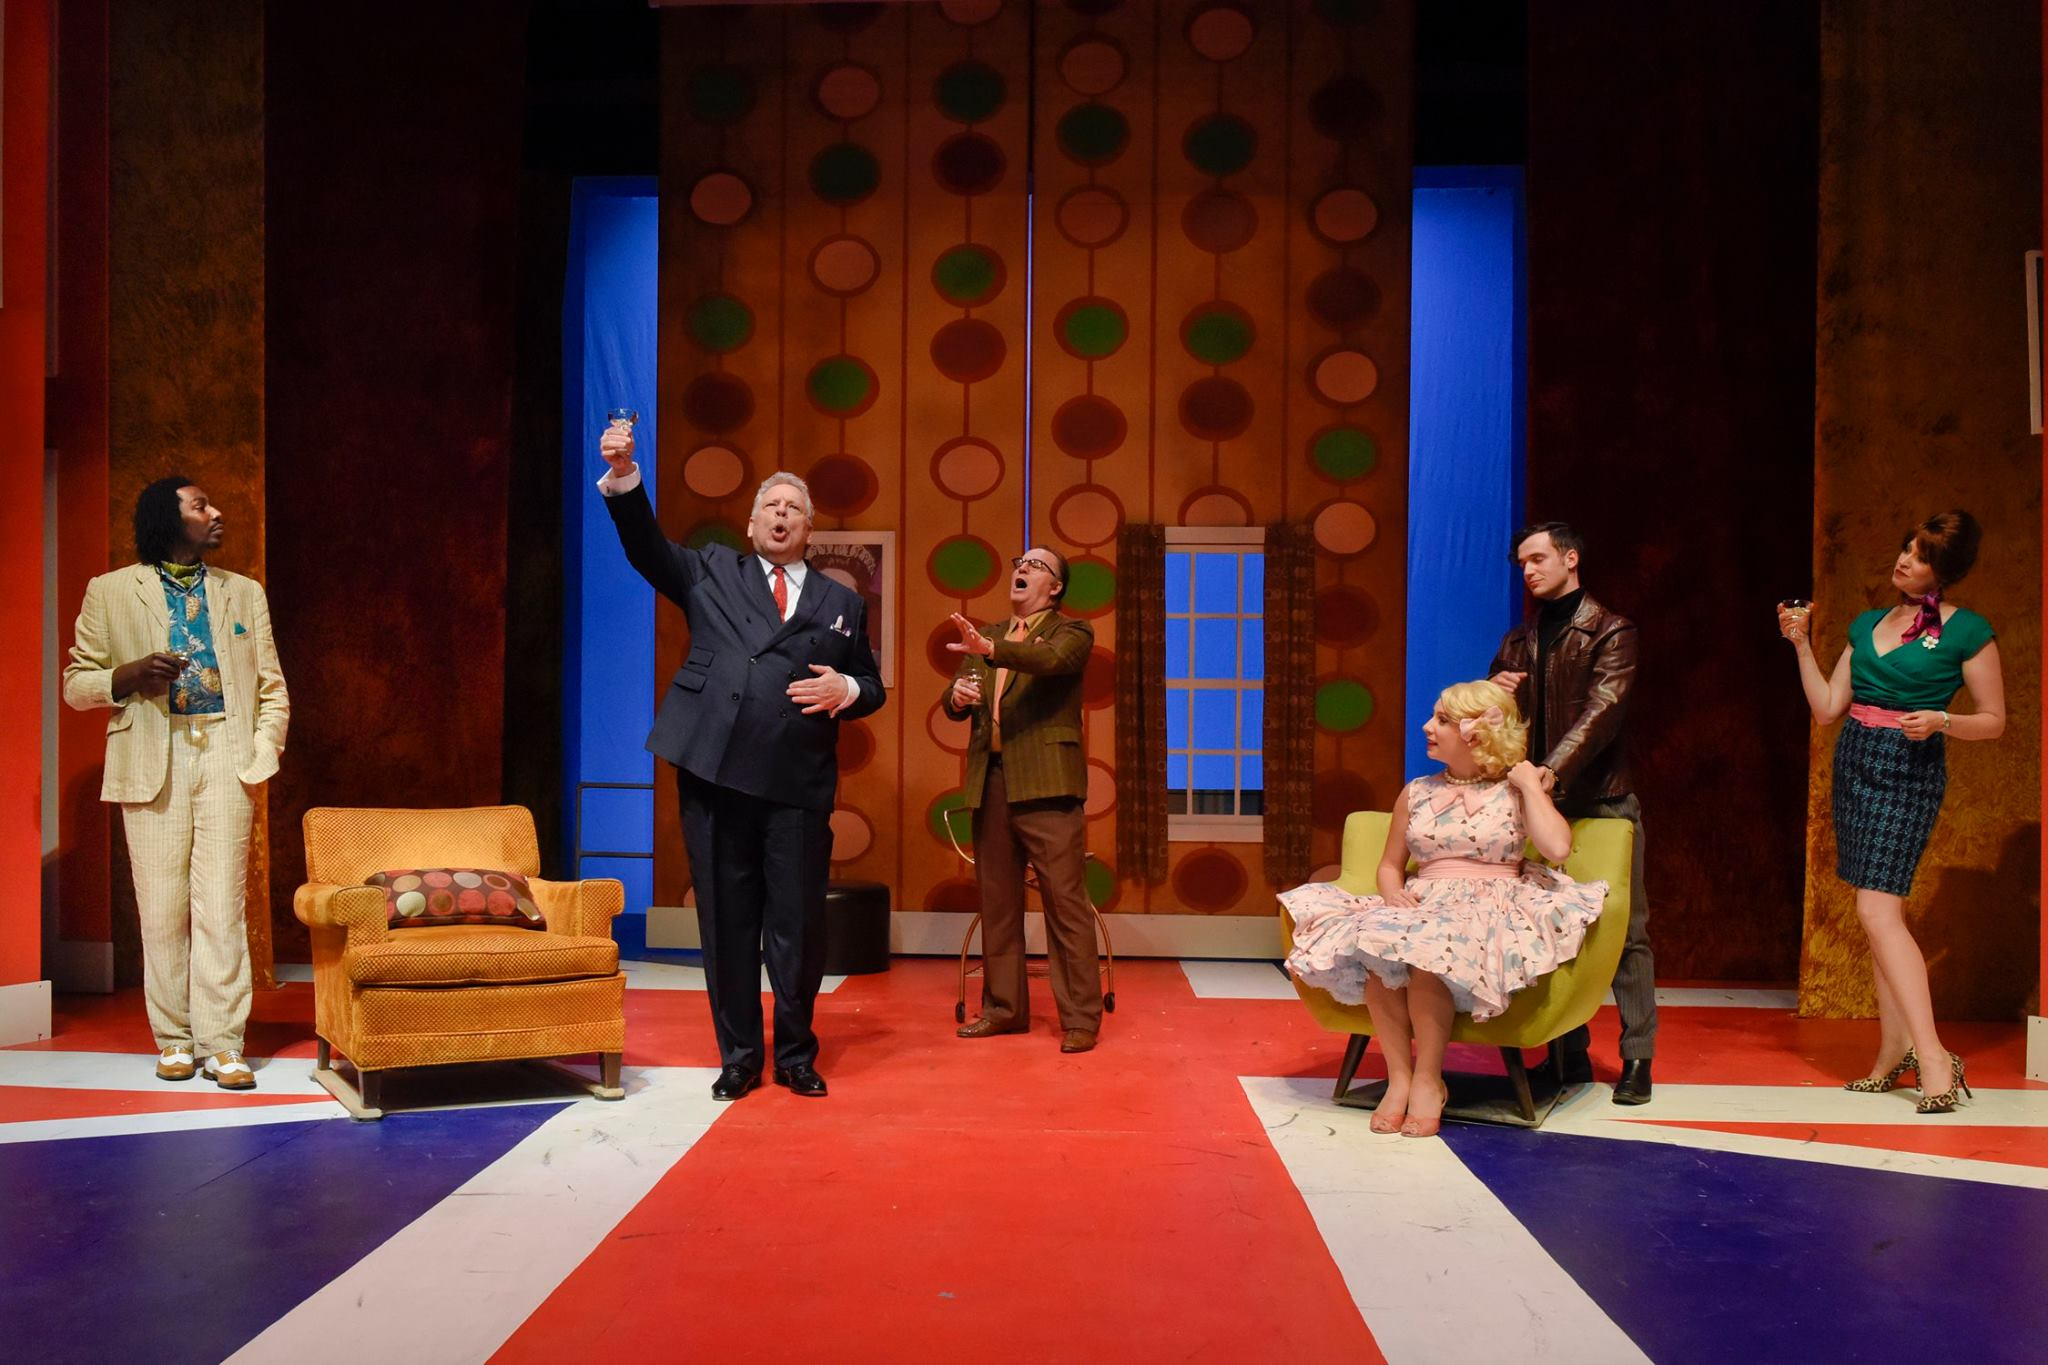 The cast of One Man, Two Guvnors